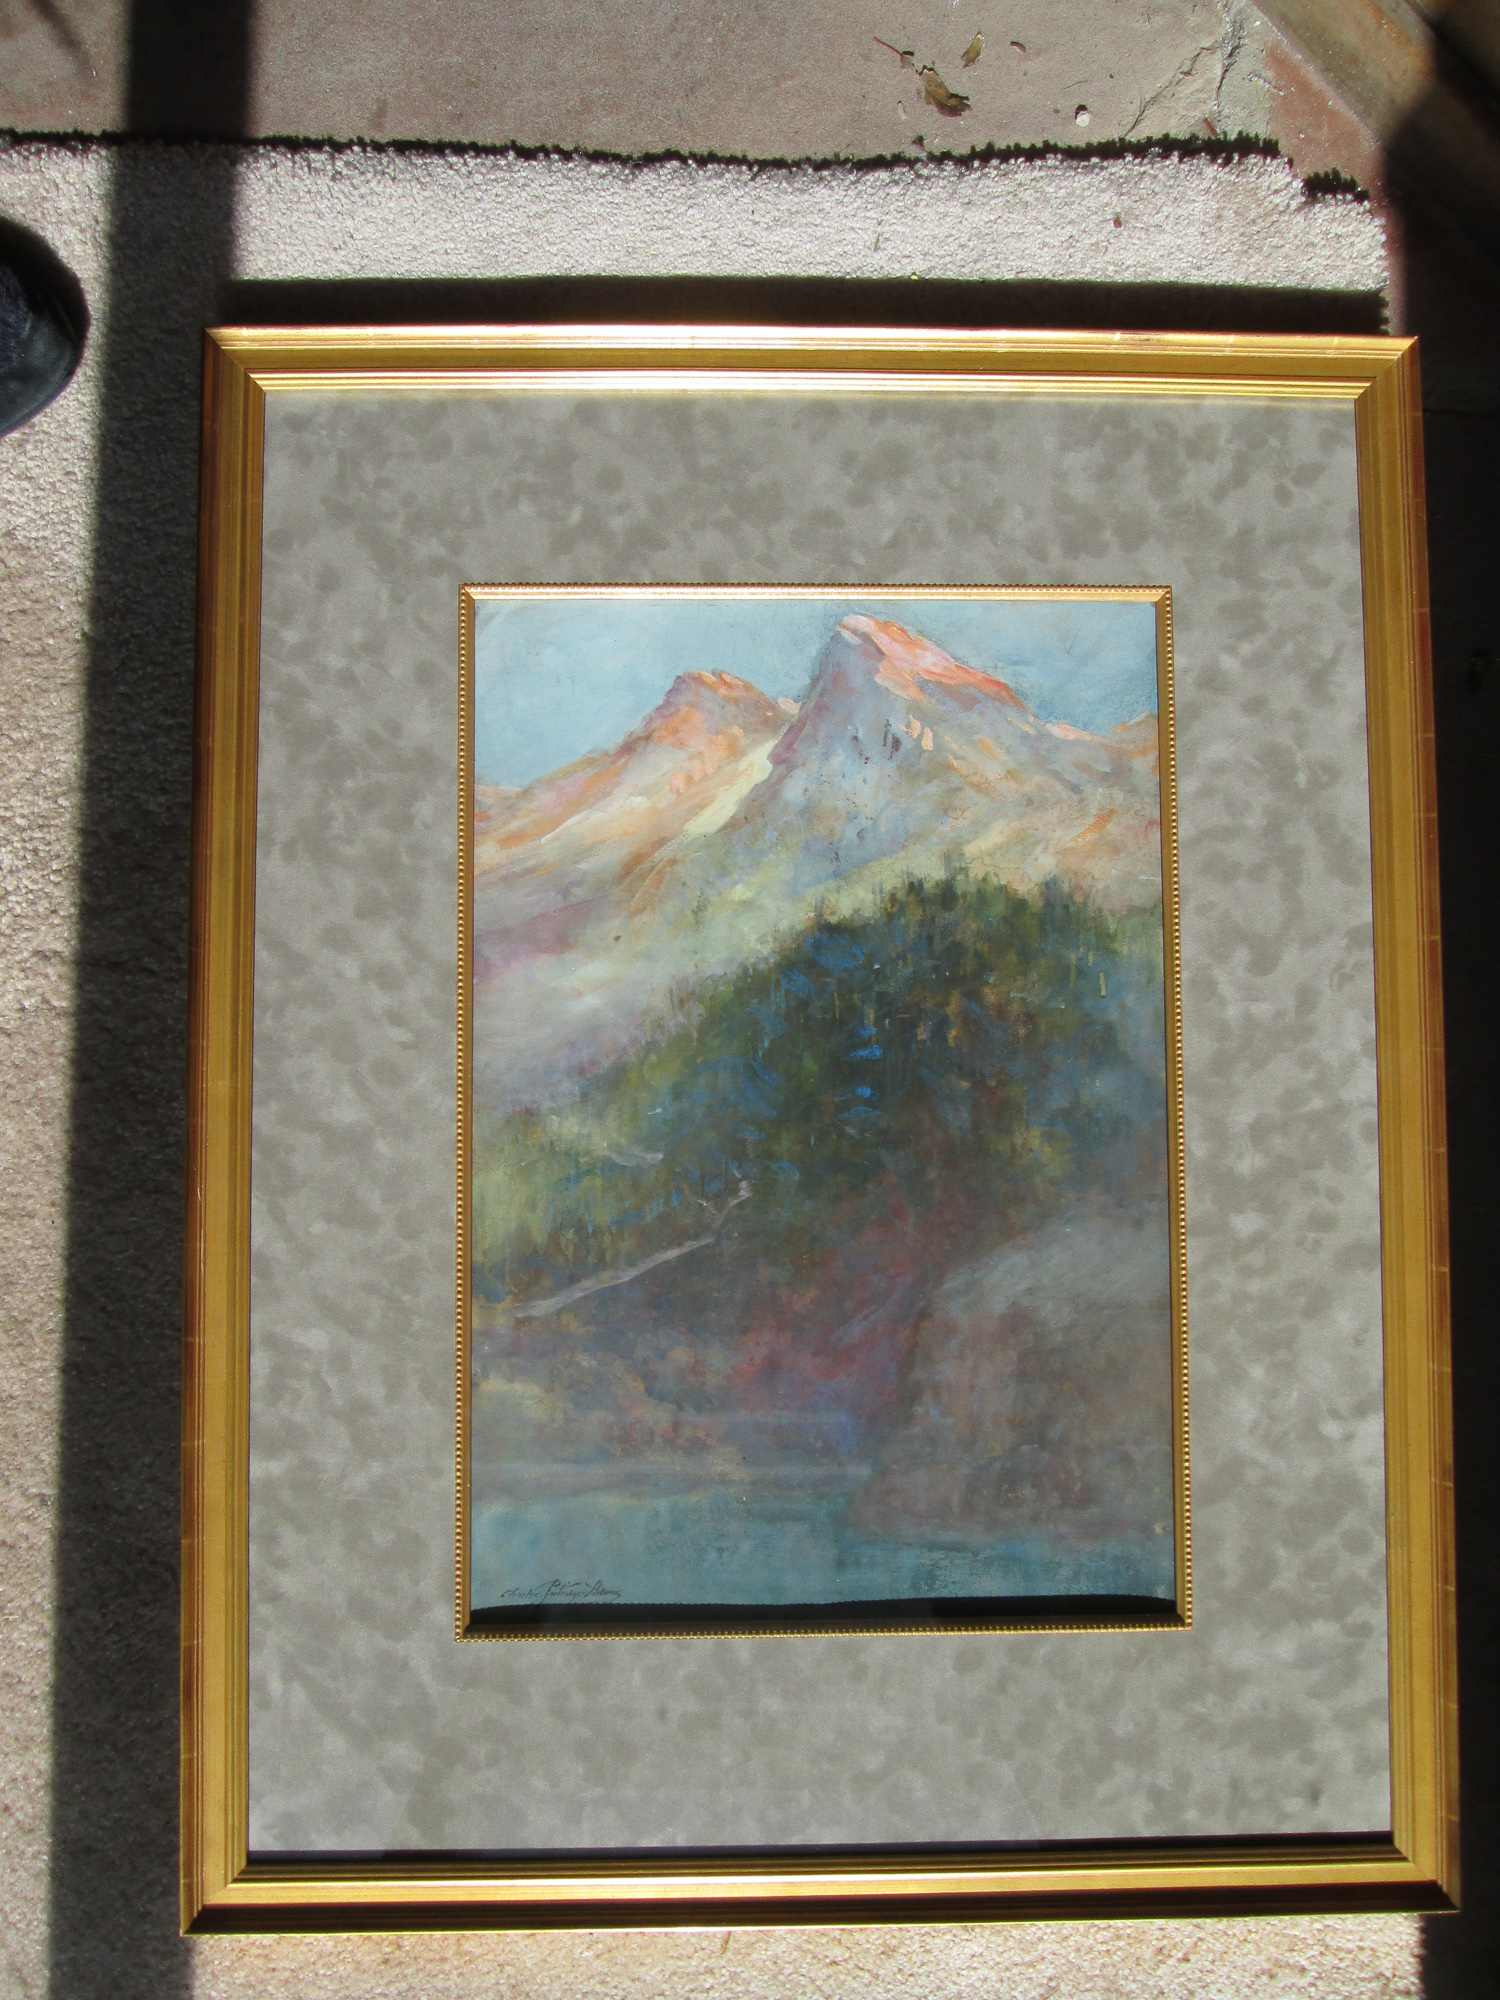 (Untitled) Mountain Scene